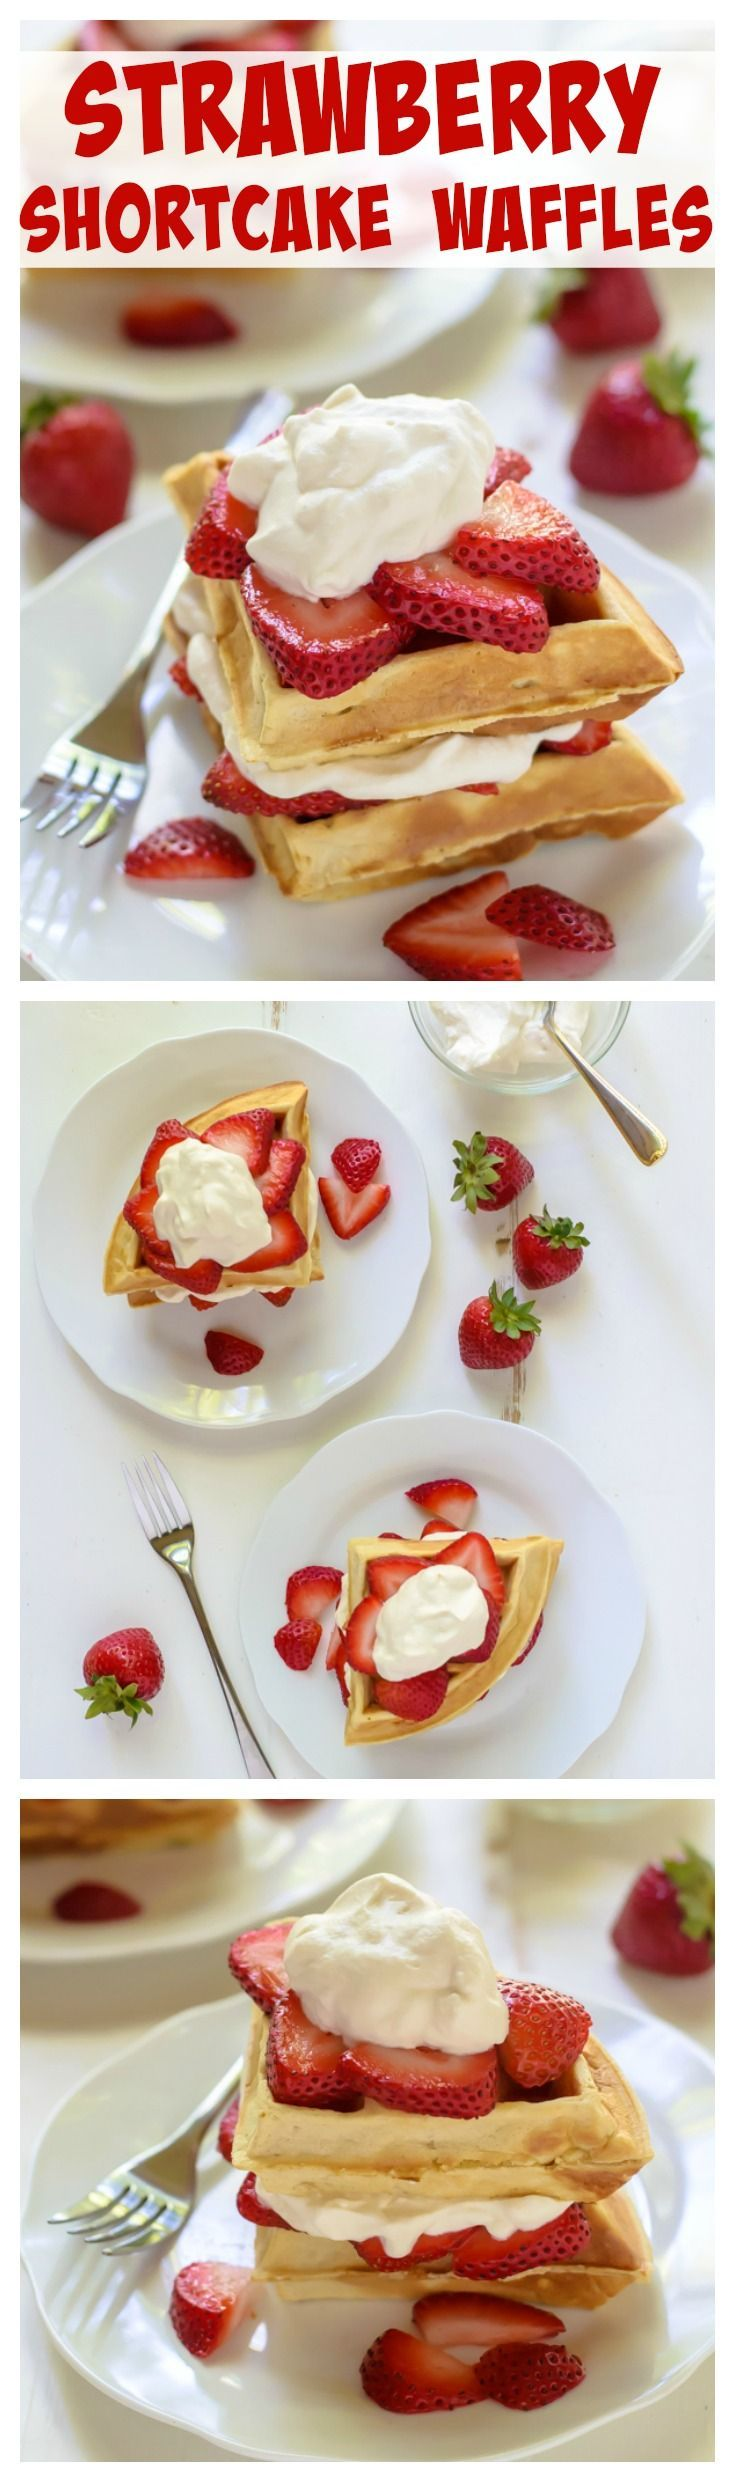 Strawberry Shortcake Waffles with Maple Whipped Cream